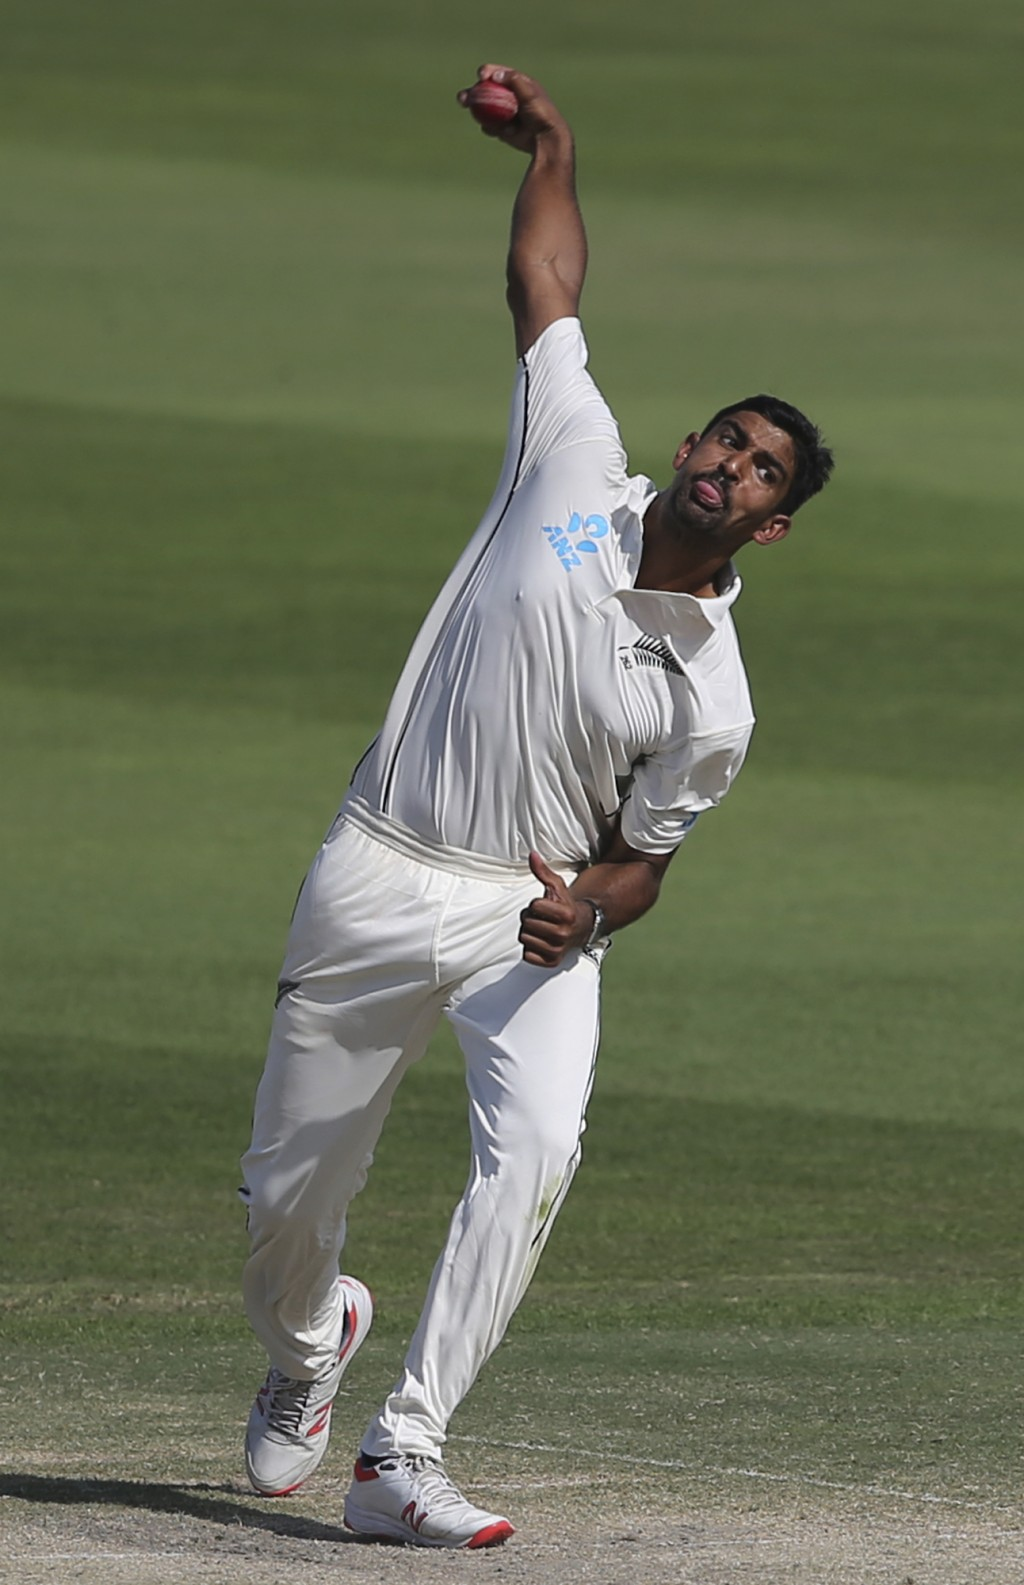 New Zealand's Ish Sodhi throws the ball in their test match against Pakistan in Abu Dhabi, United Arab Emirates, Monday, Nov. 19, 2018. (AP Photo/Kamr...